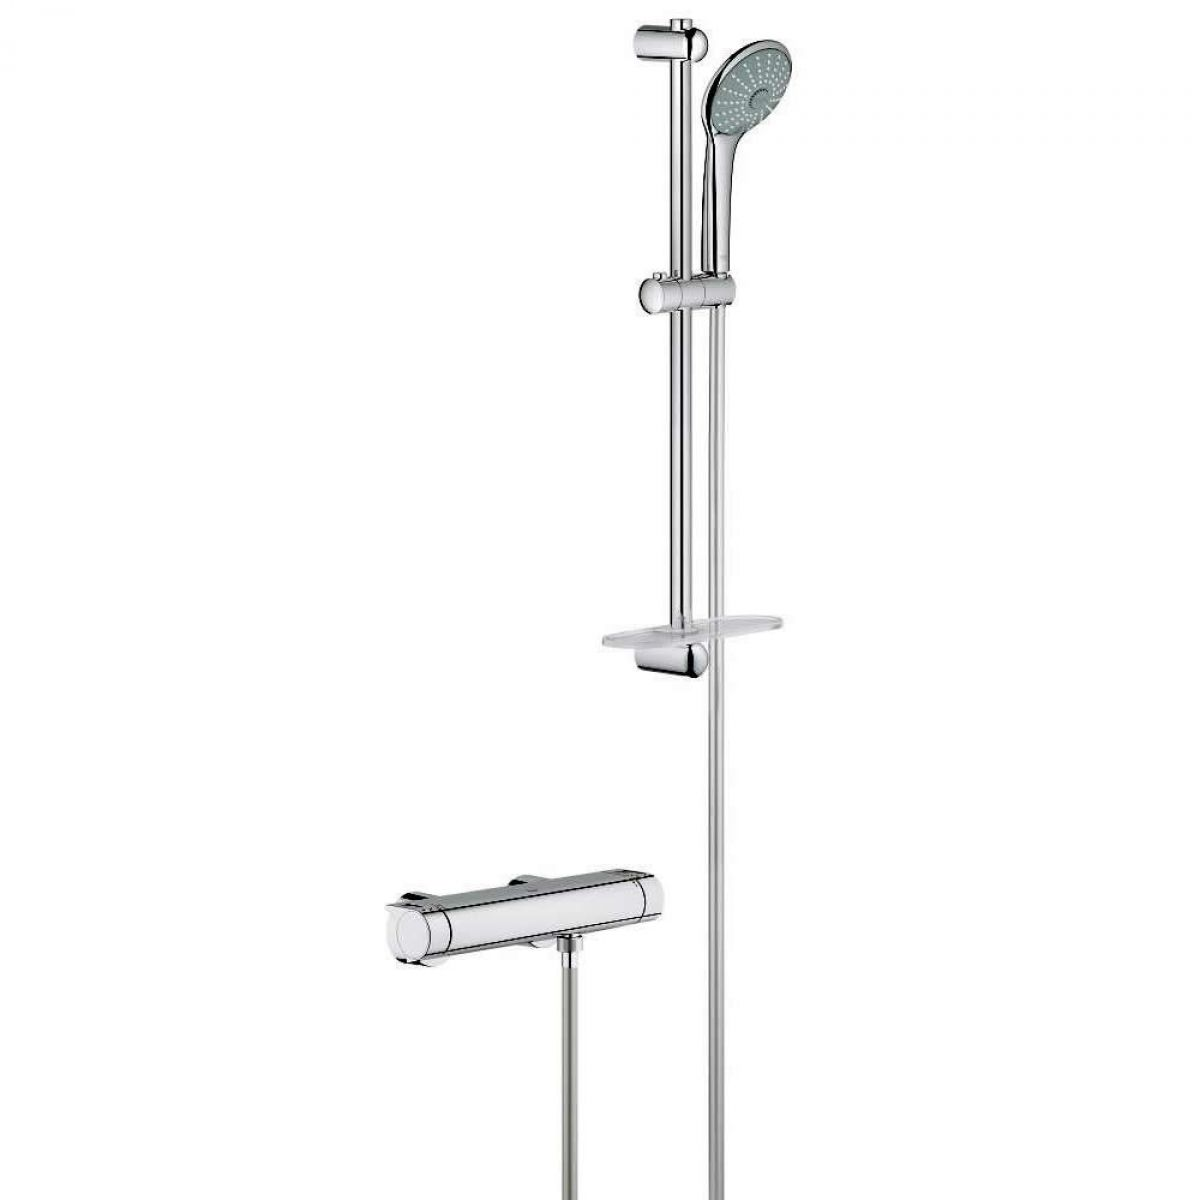 Grohe 2000 Grohe Grohtherm 2000 Thermostatic Shower Mixer With Euphoria Shower Set